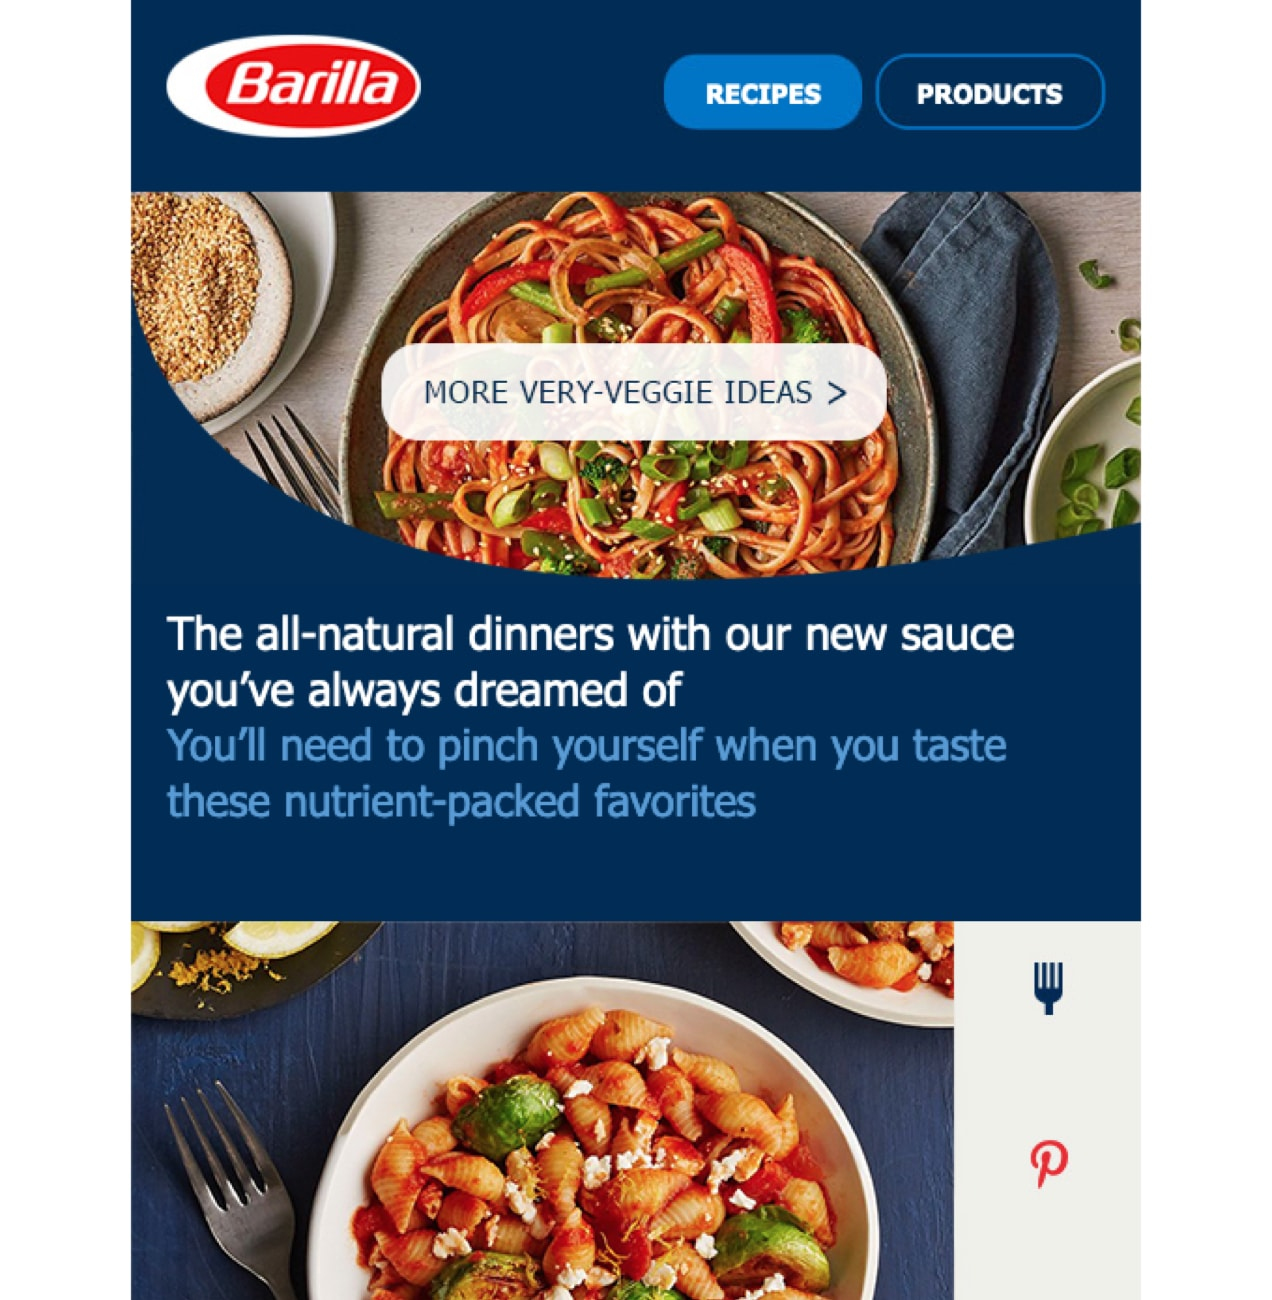 An email from Barilla with recipes